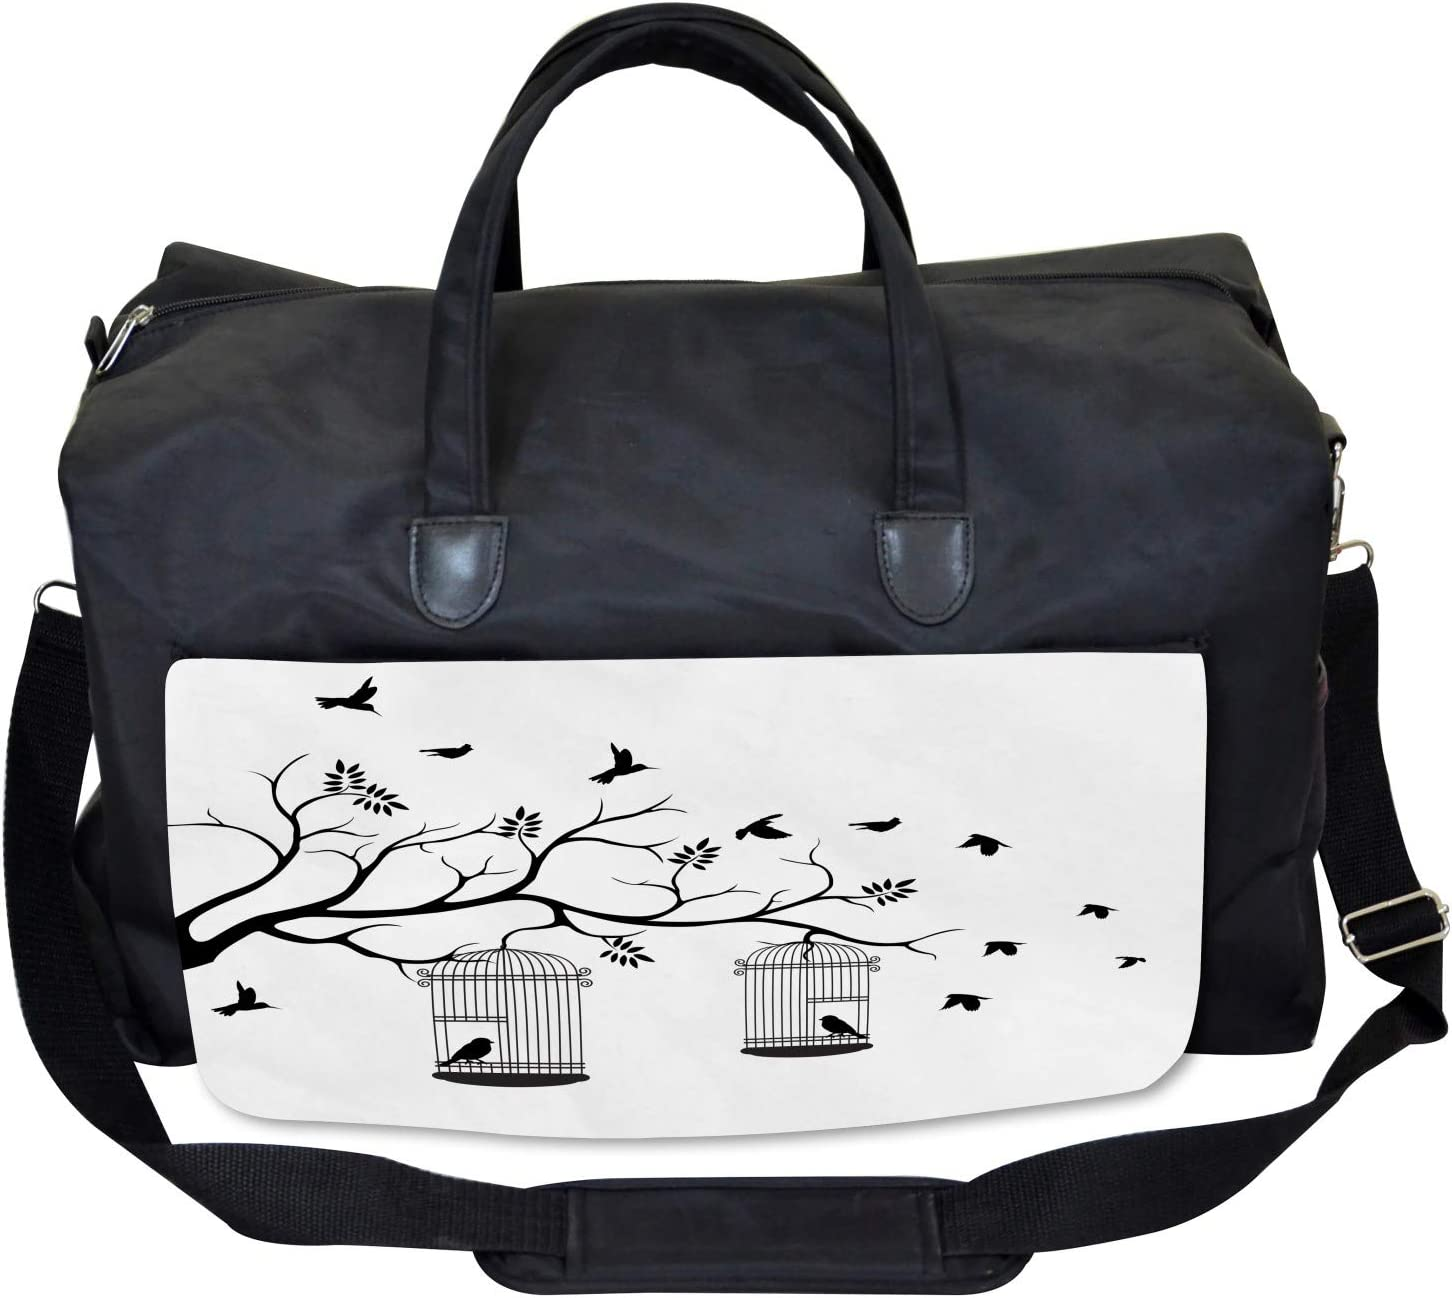 Birds Flying to Cages Ambesonne Romantic Gym Bag Large Weekender Carry-on